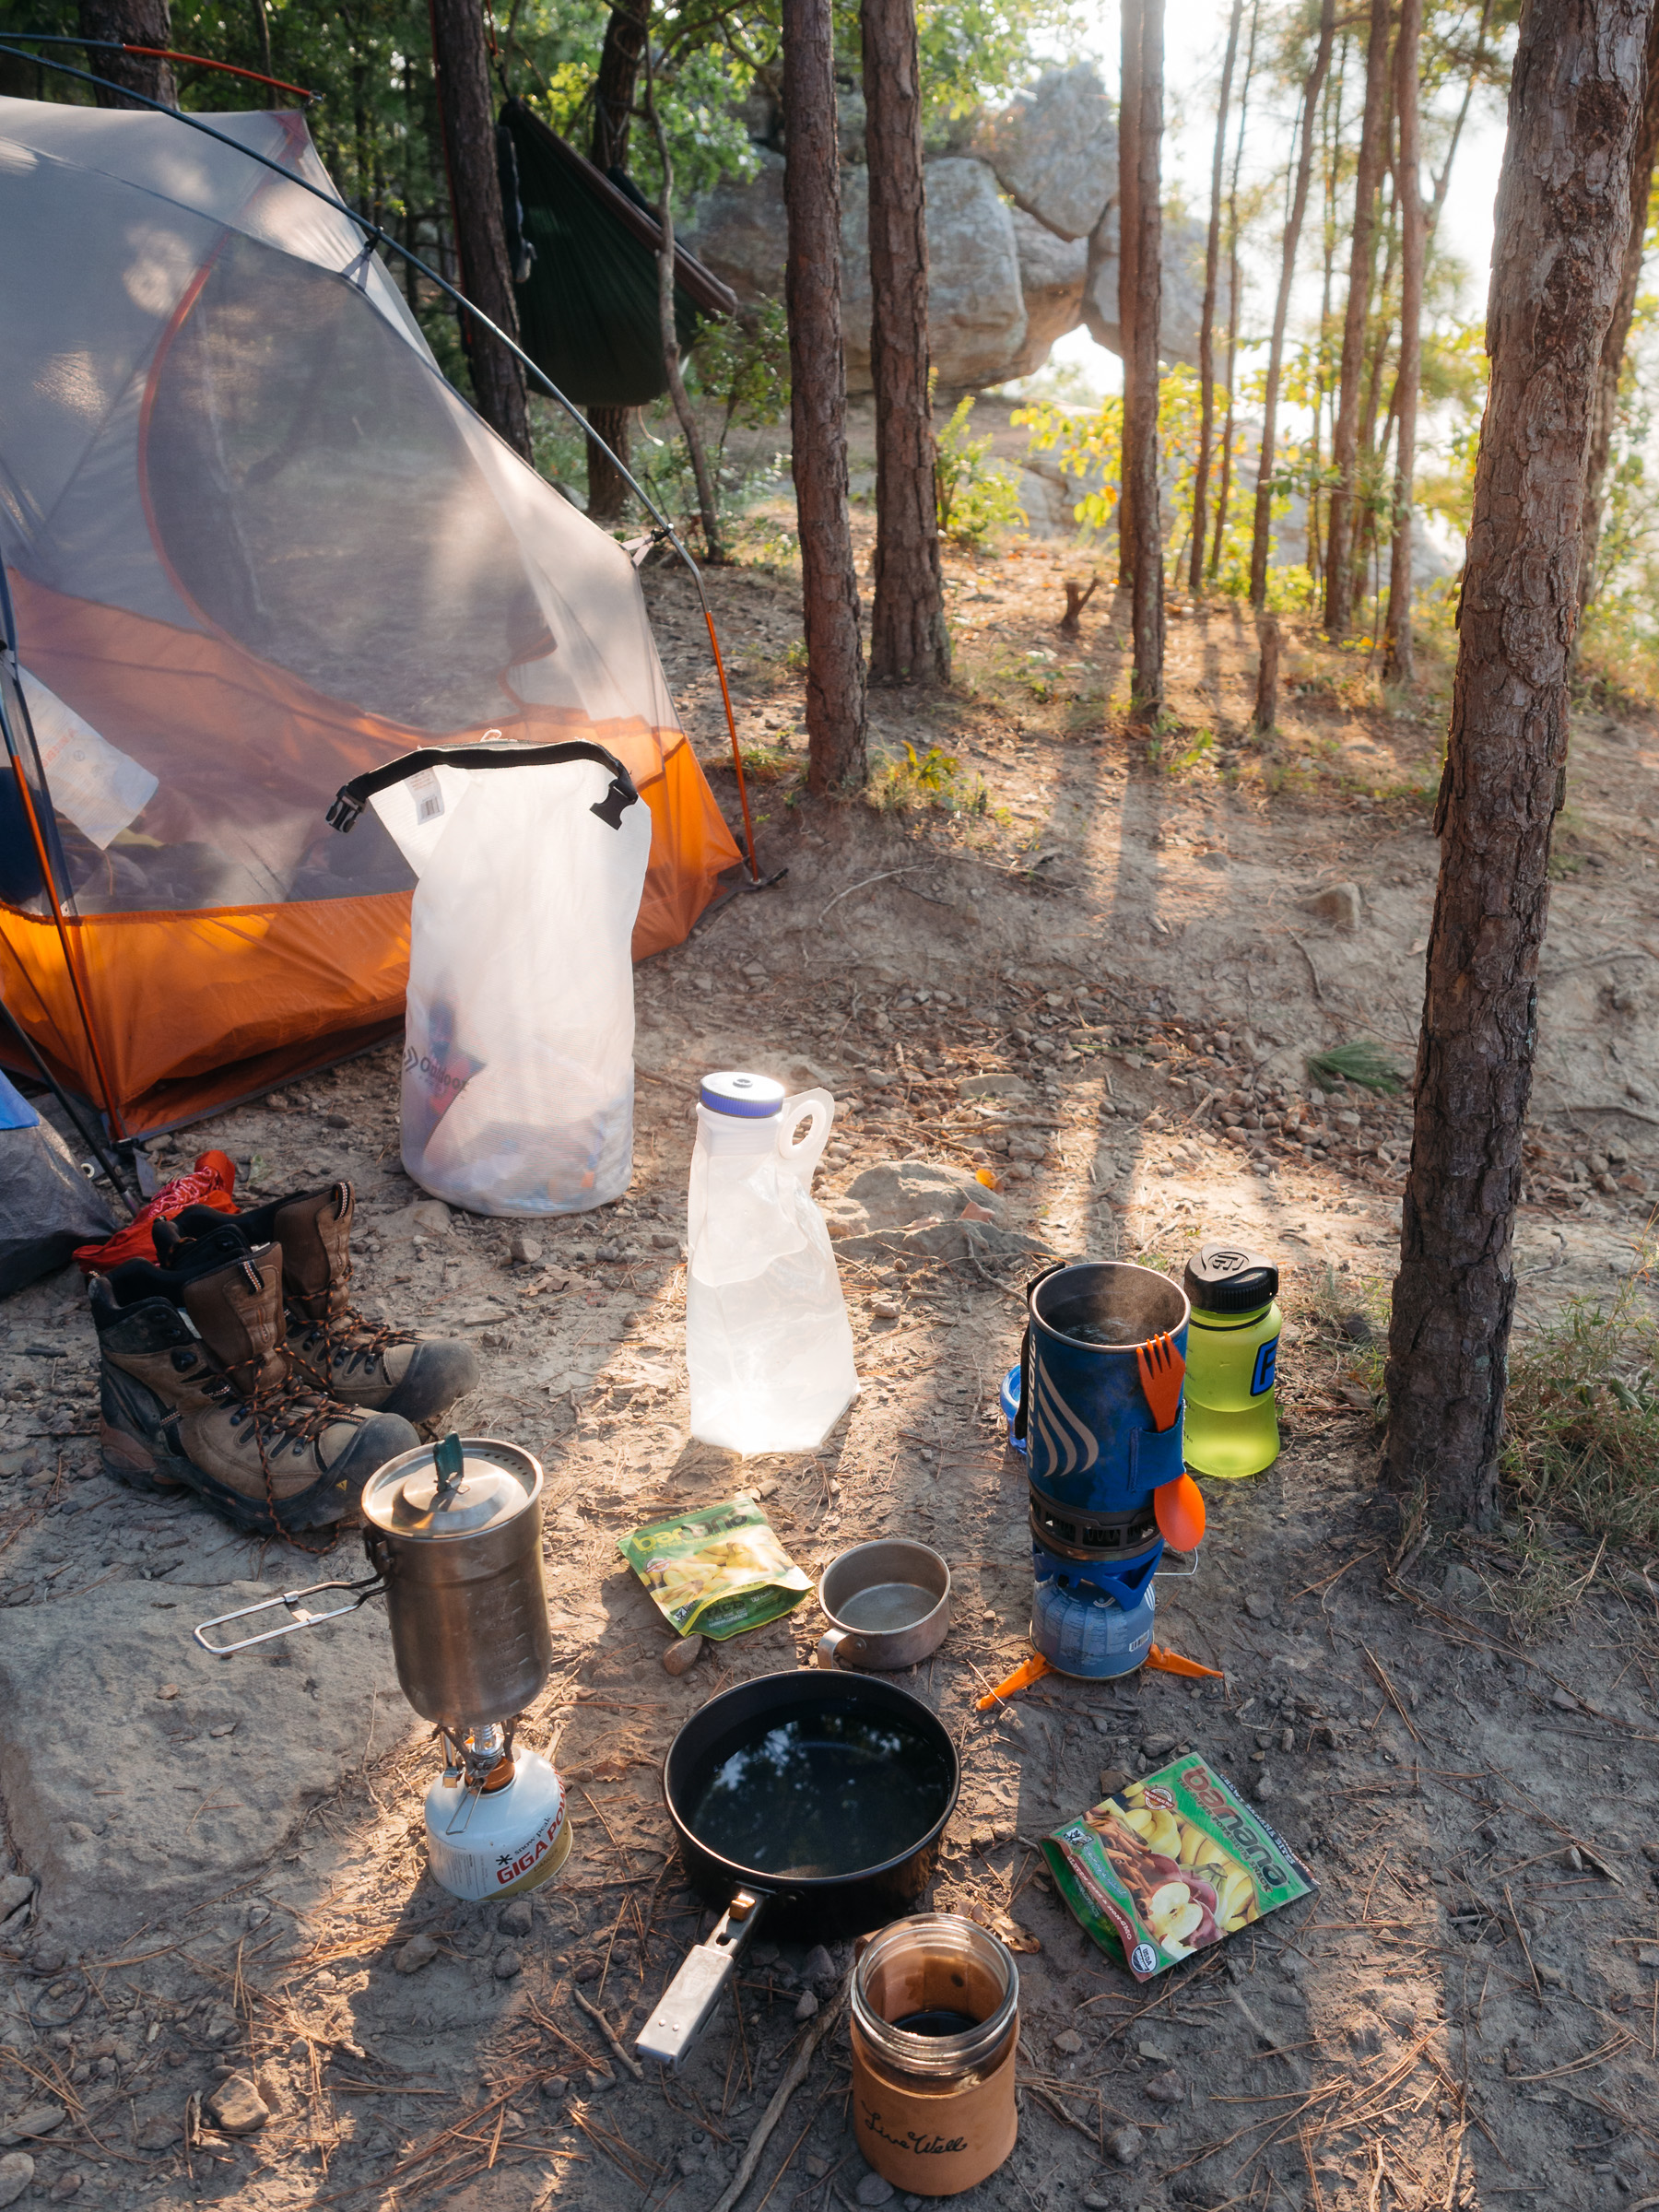 Barnana an all natural trail snack asked us to take a photo in a natural camp setting to be posted on their social media channels.